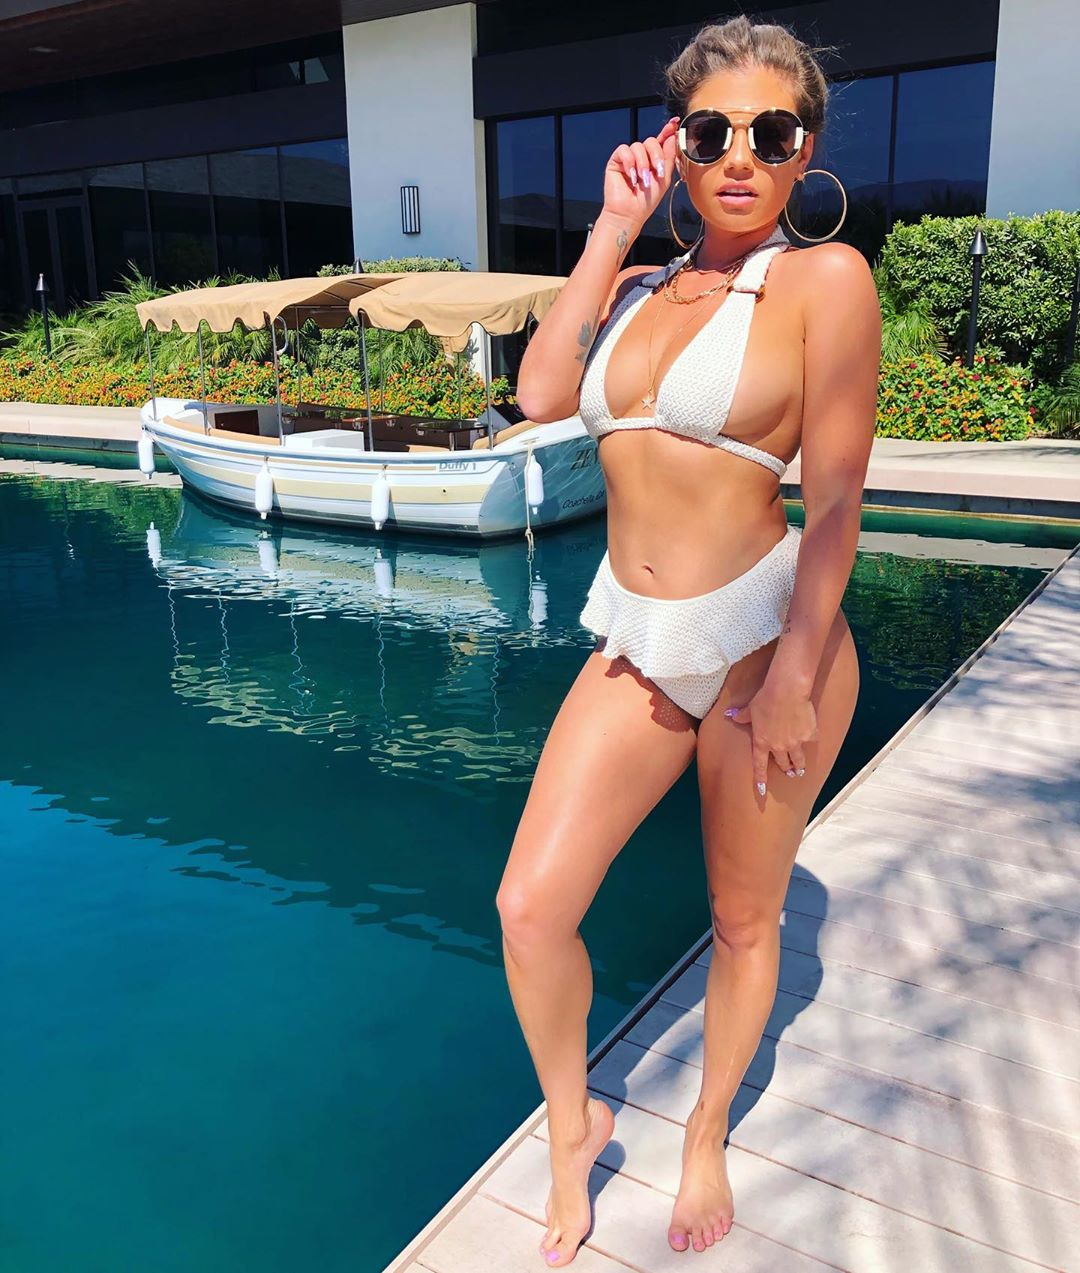 Chanel West Coast Sexiest Pictures